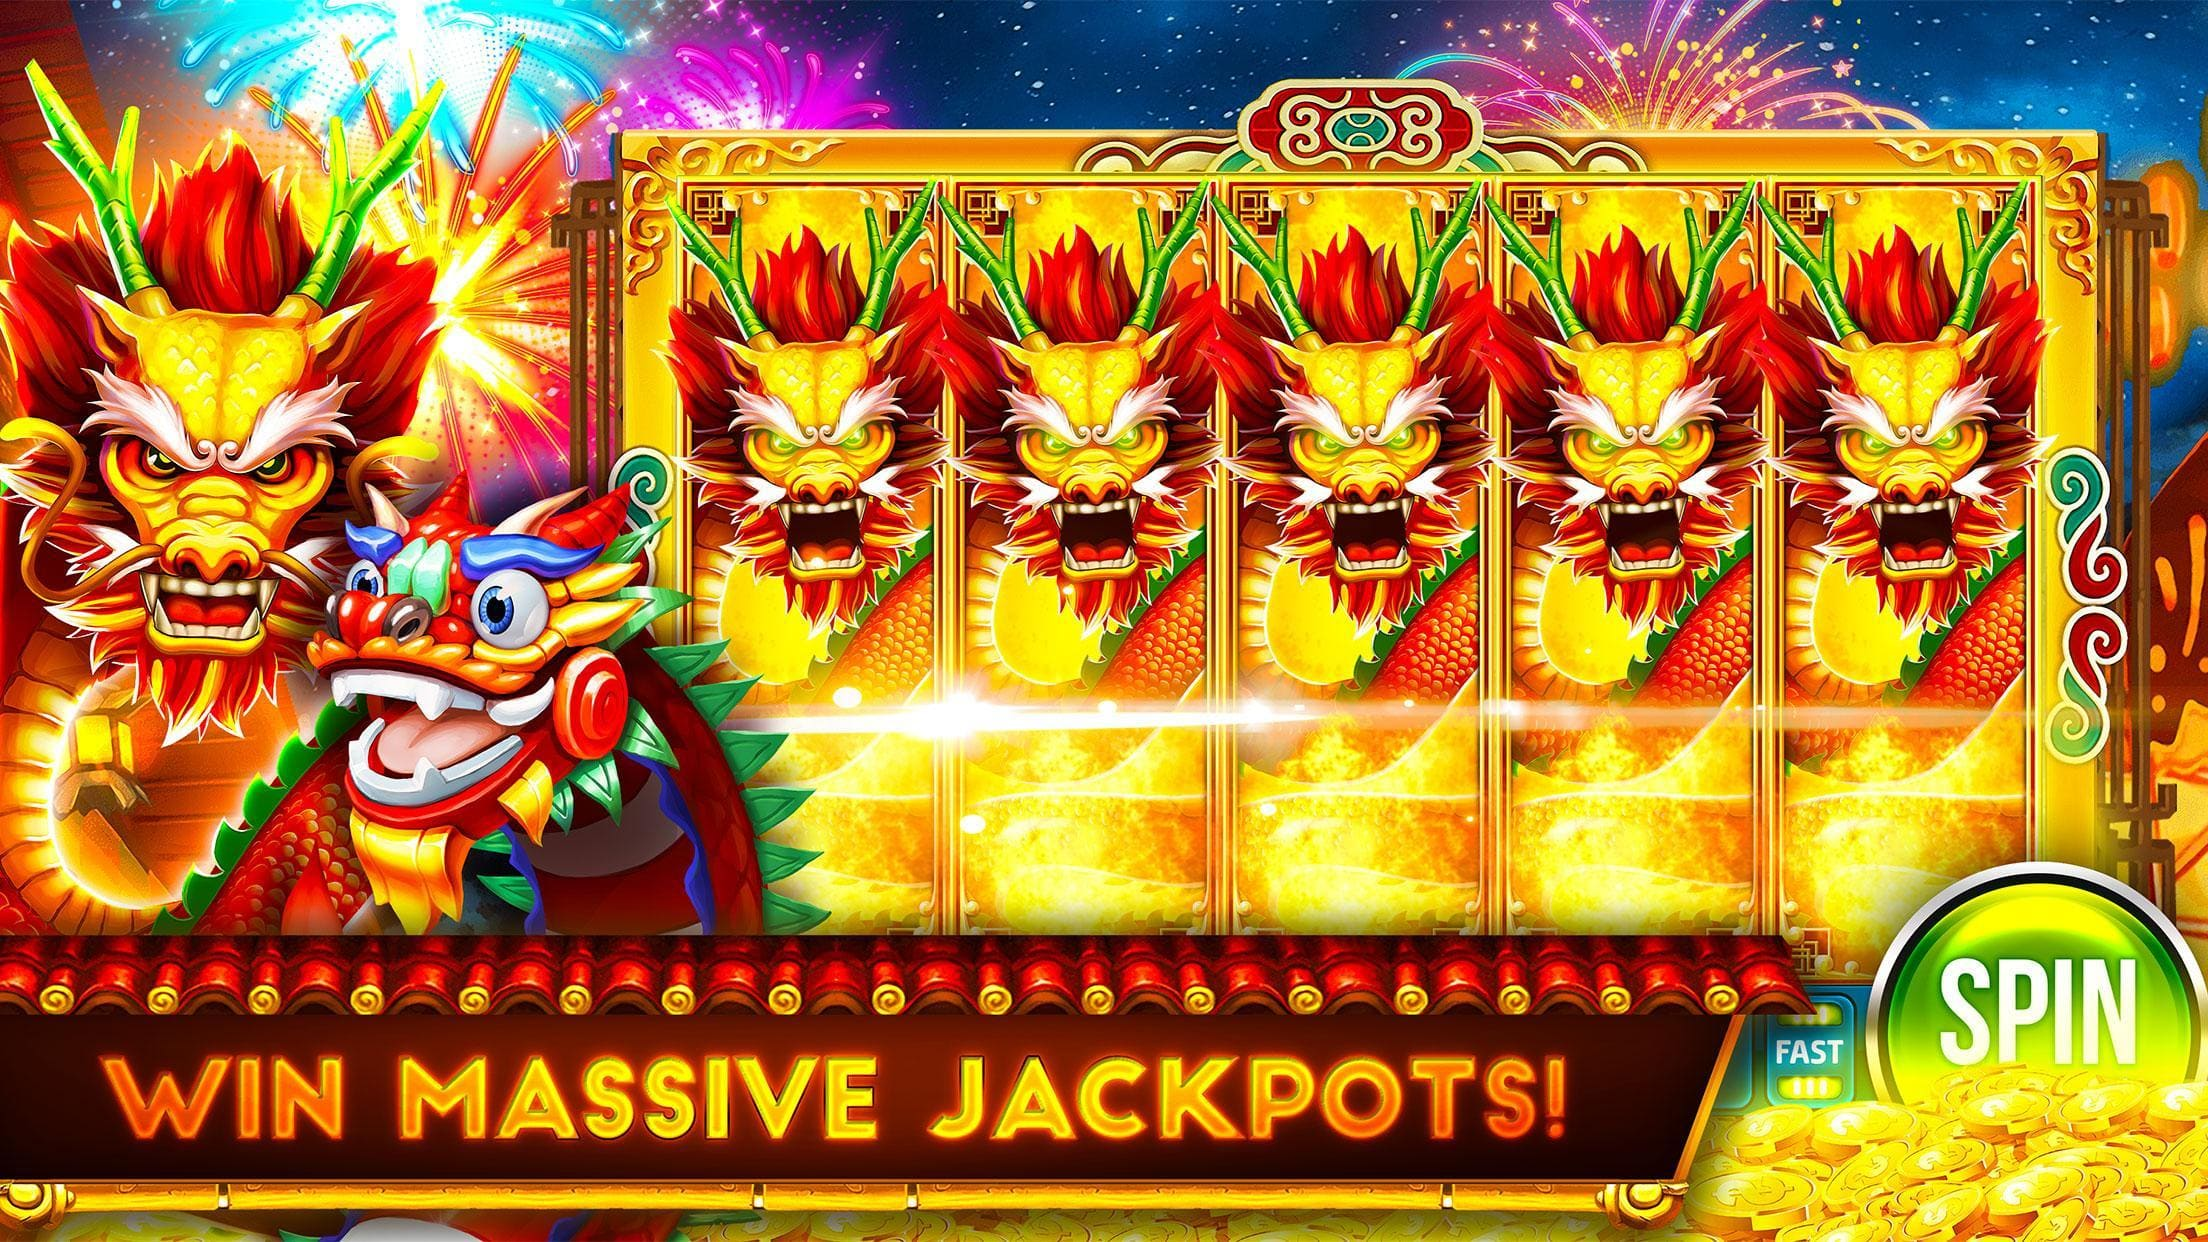 Looking for additional income from online slot games